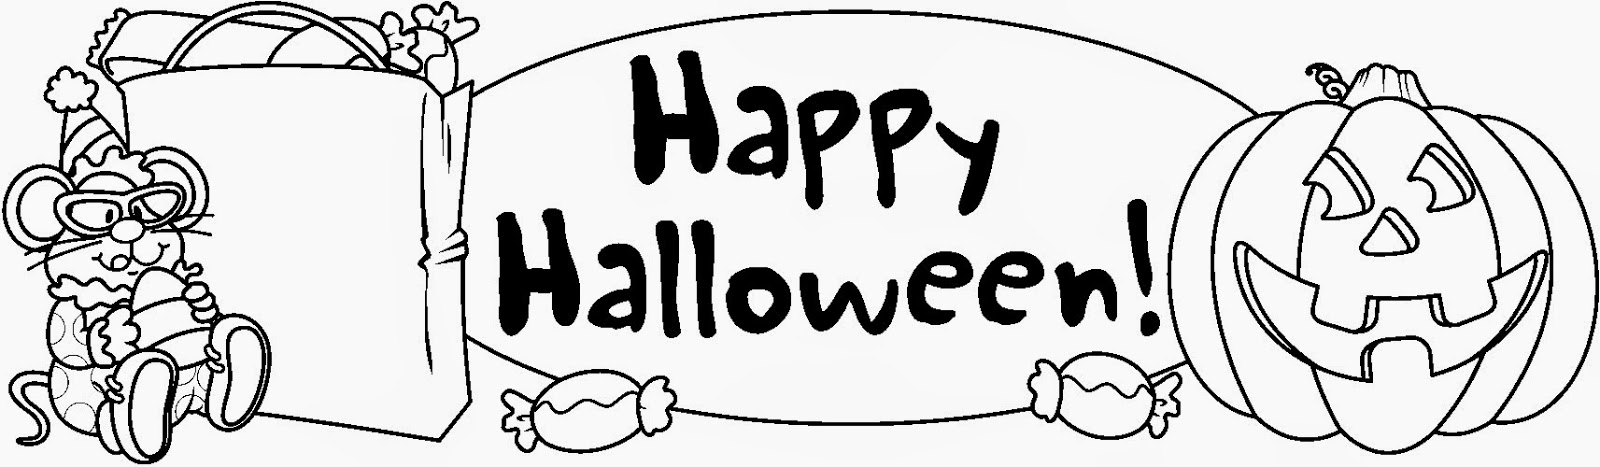 Happy Halloween 2014 Black and White Clip art PicturesHalloween Clip Art Black And White Pumpkin